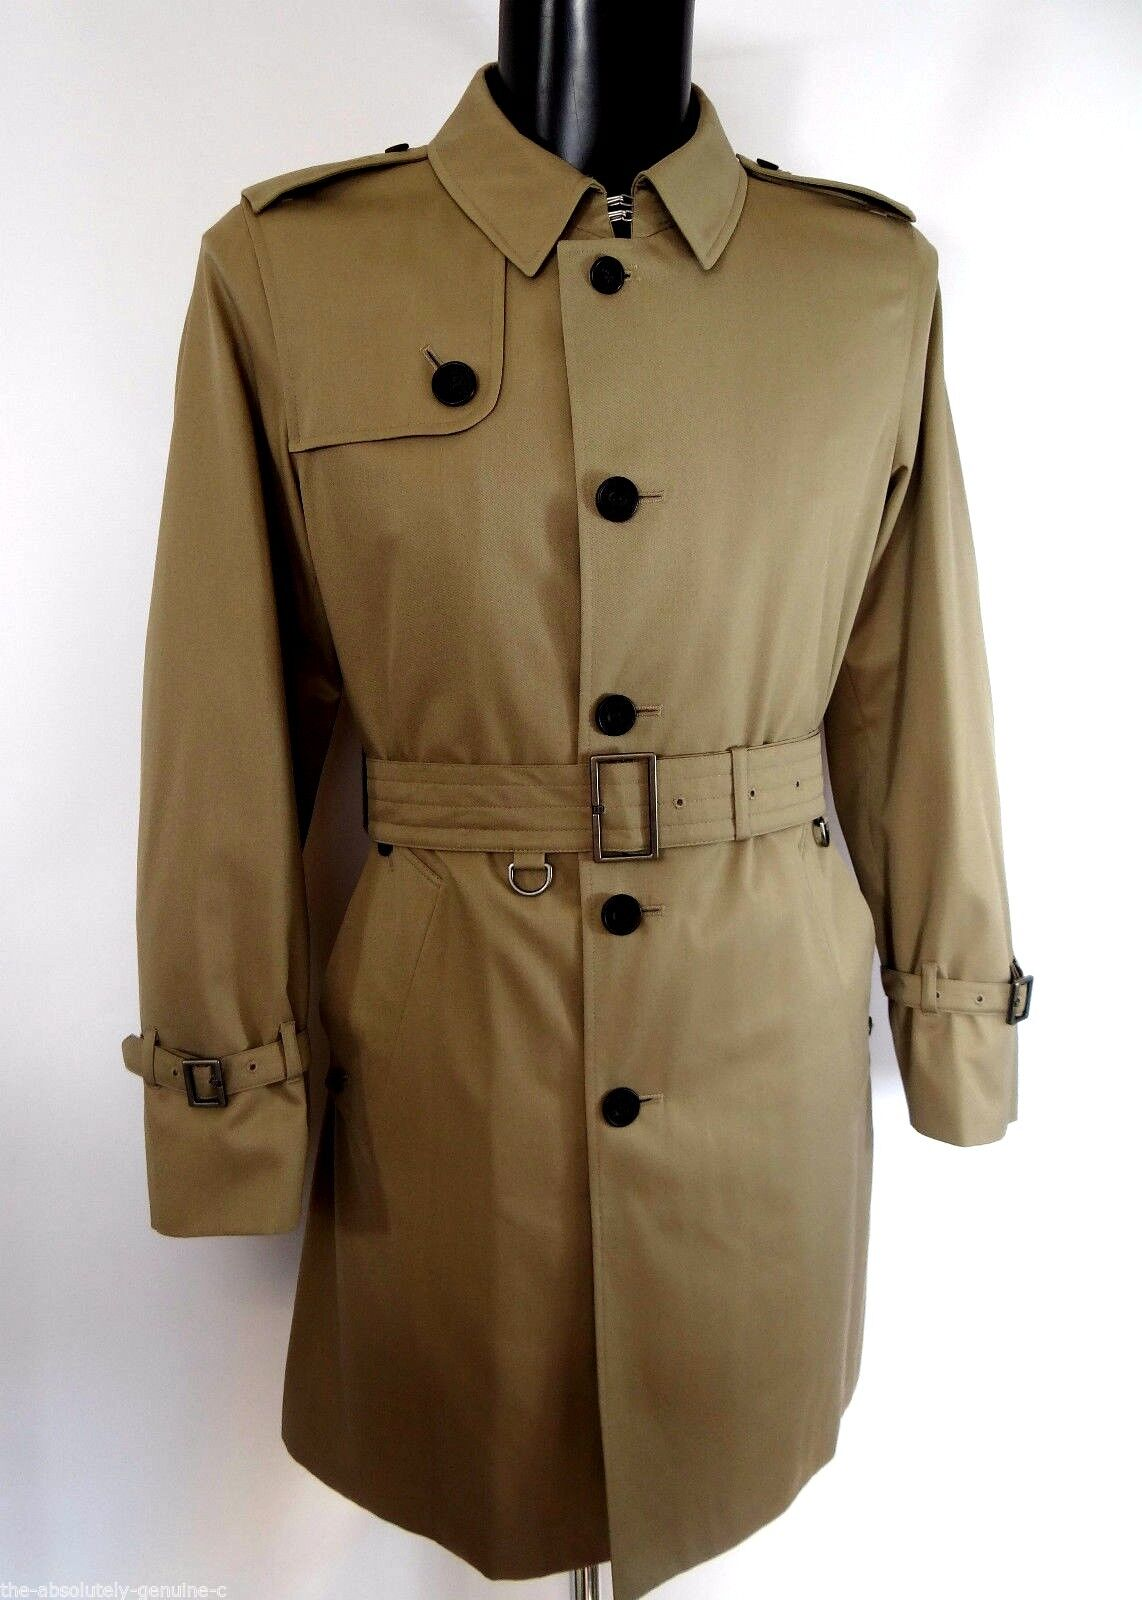 AQUASCUTUM SINGLE BREASTED Beige Trench Coat Größe 44 BNWT CRAFTED IN ENGLAND